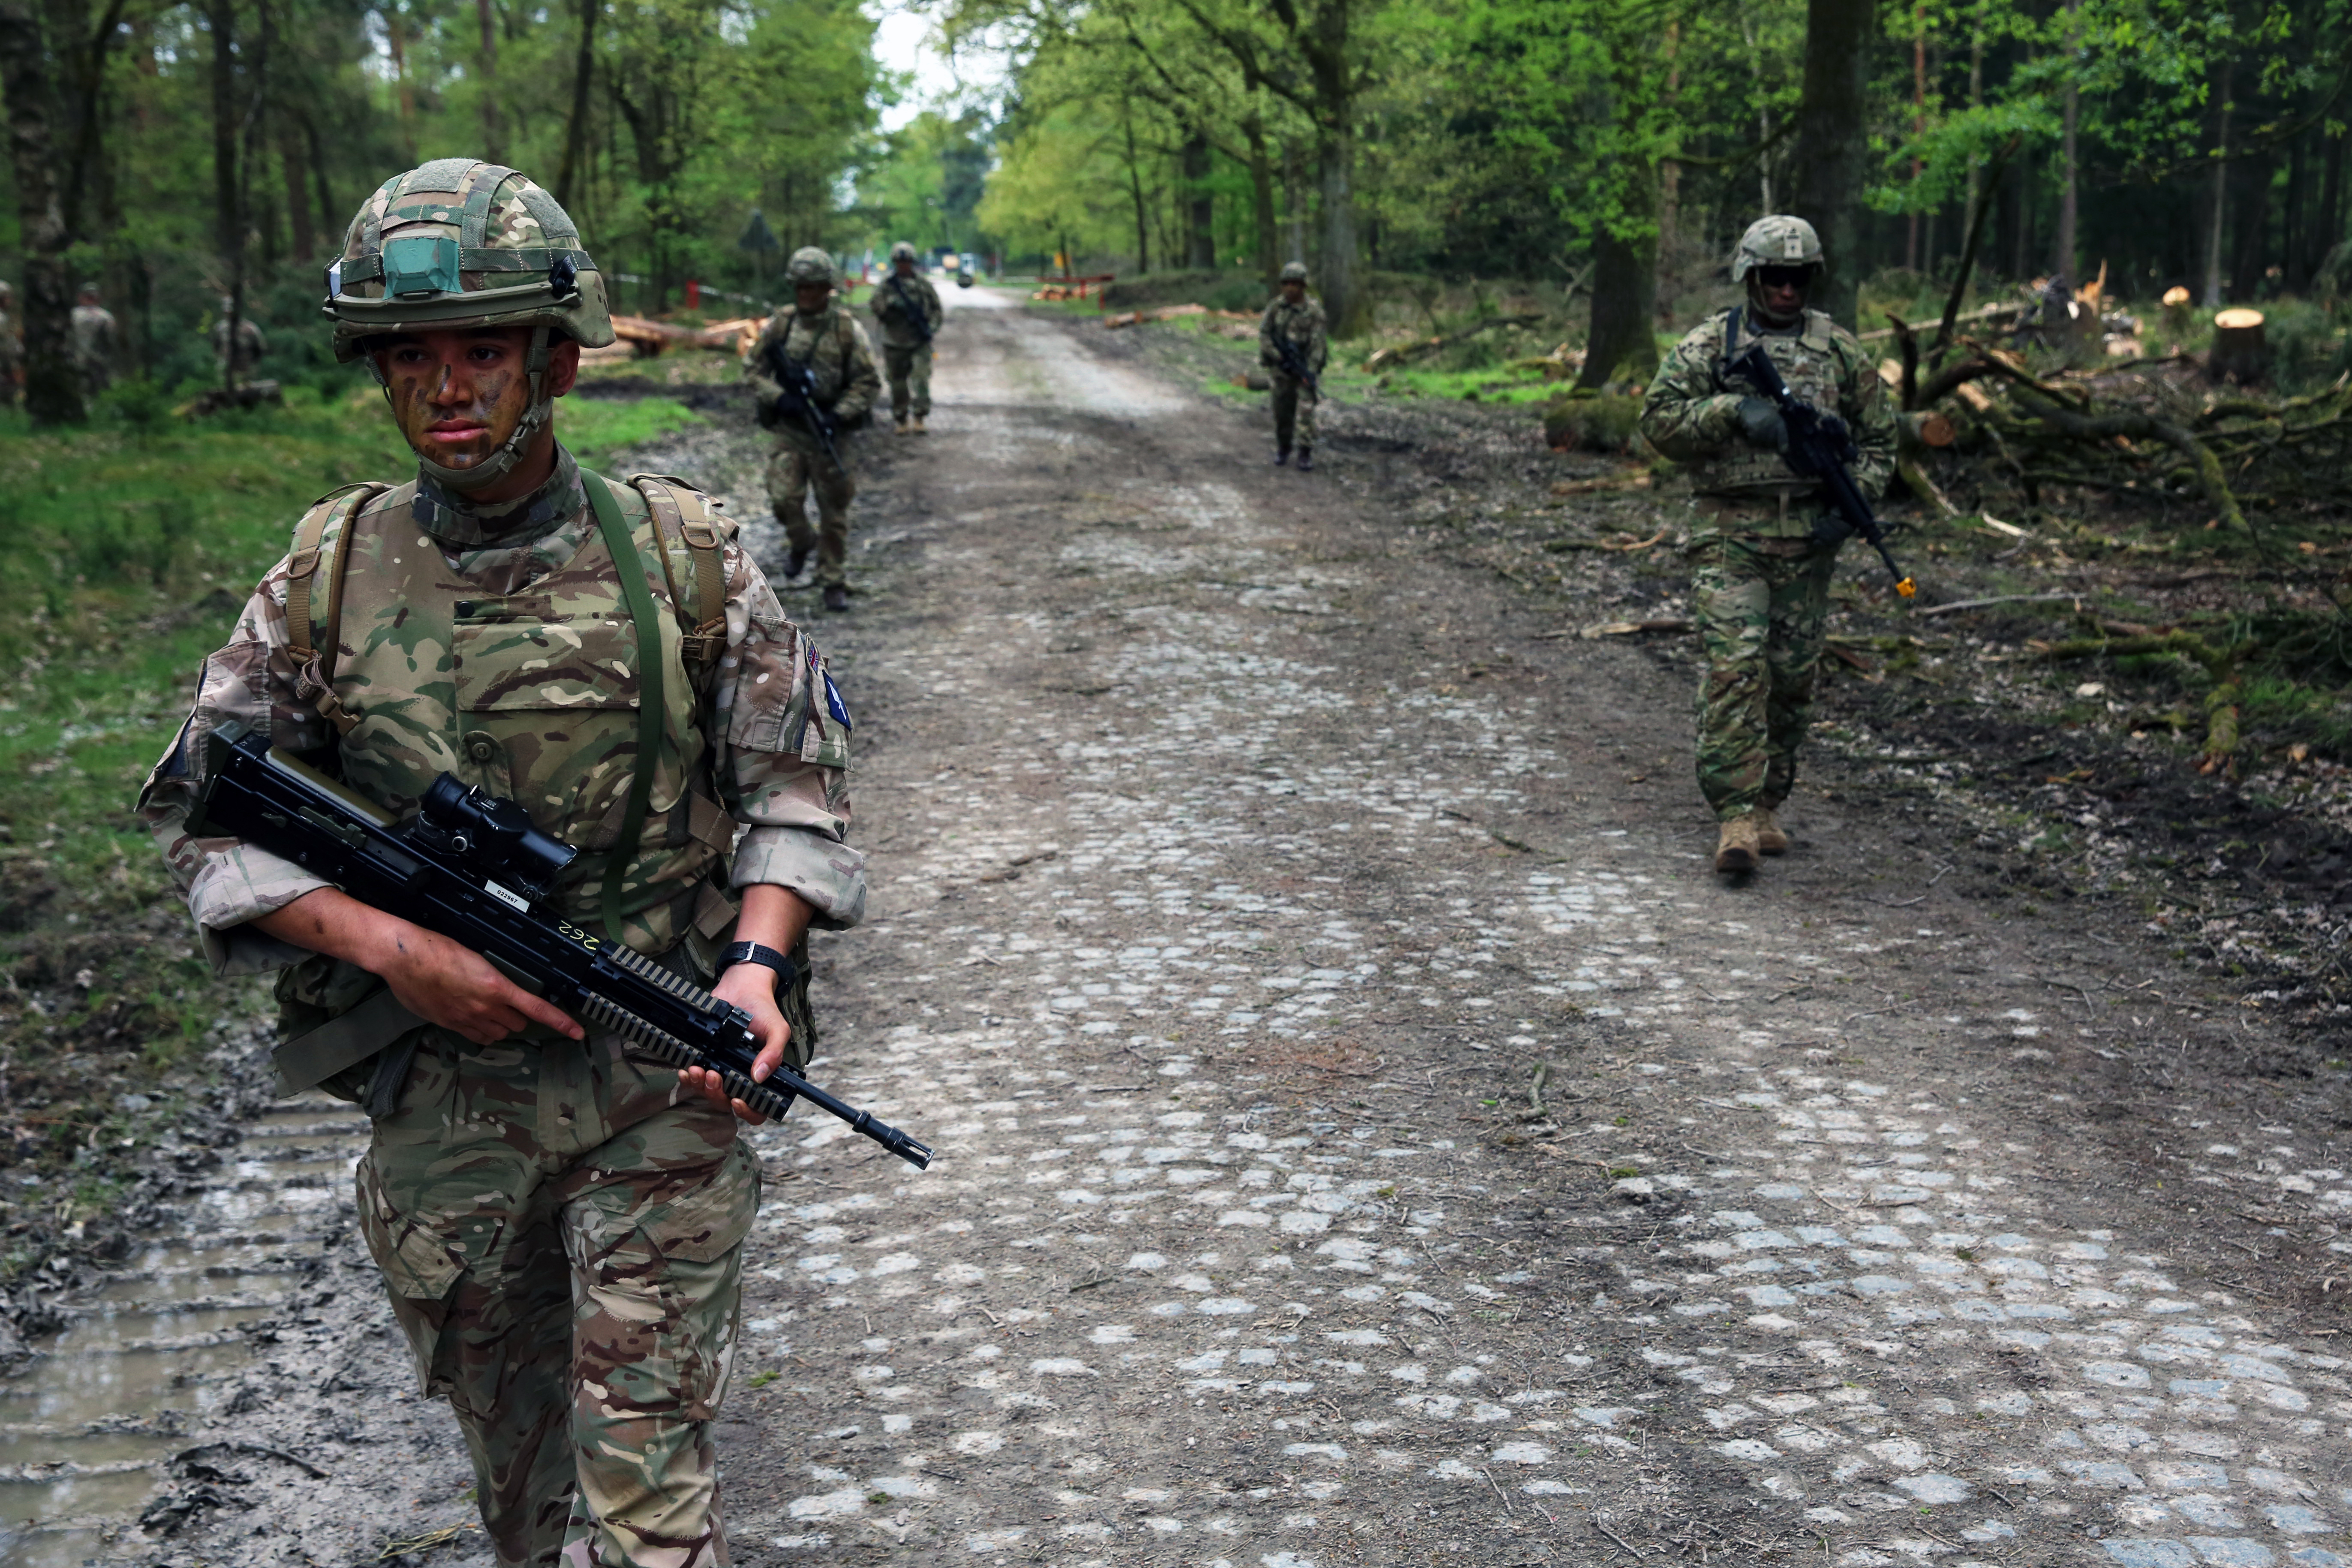 U.S. Army Soldiers assigned to Bravo Company, 44th Expeditionary Signal Battalion, 2nd Theater Signal Brigade, and British Army Soldiers assigned to the 250th Signal Squadron, Queen's Gurkha Signals, conduct a joint tactical patrol during exercise Stoney Run, April 24, 2018 in the Sennelager Training Area, Germany. Stoney Run is an annual U.S.-U.K. signal exercise designed to test and validate communications and network capabilities, and enhance interoperability and partner capacity between the two NATO allies. (U.S. Army photo by William B. King)